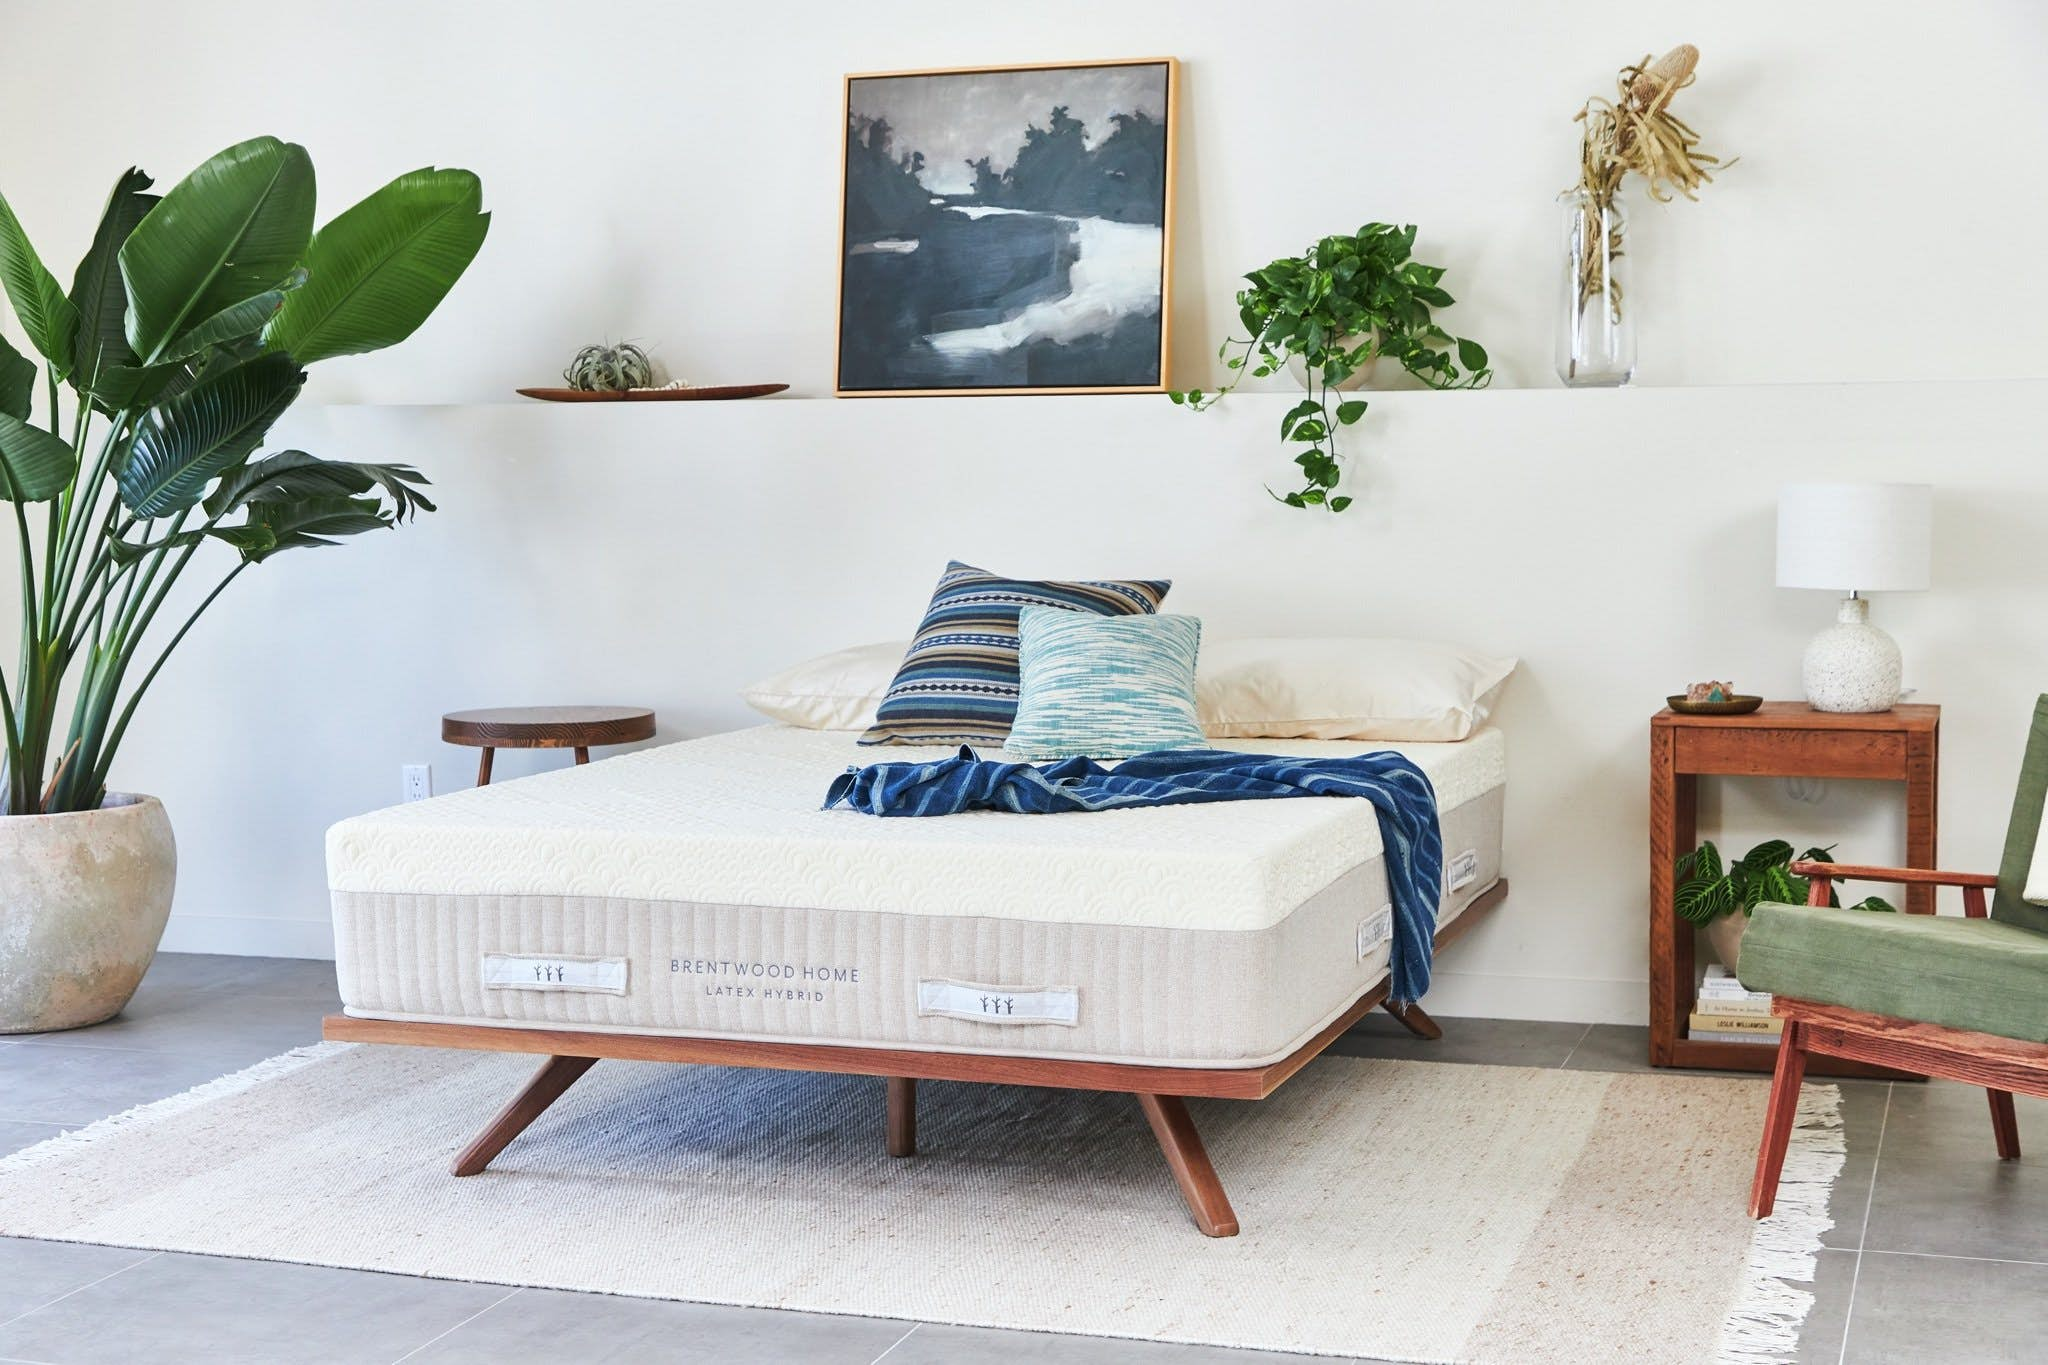 Brentwood Home's New Mattress Made from Upcycled Denim and Water Bottles